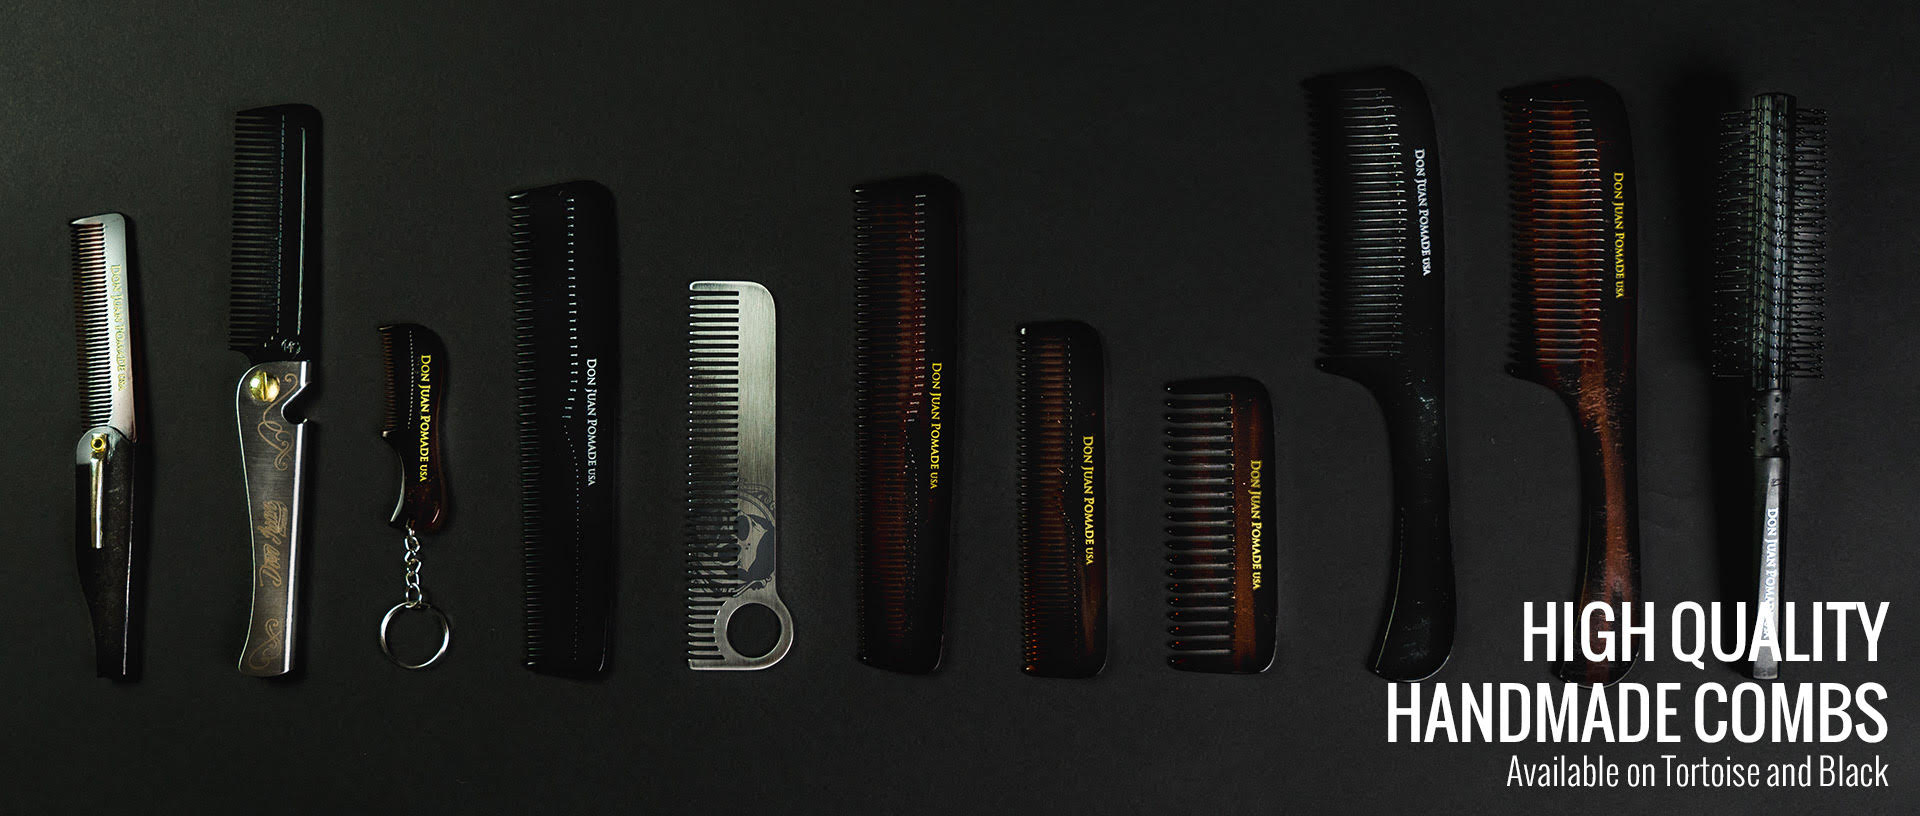 Don Juan Pomade High Quality Handmade Combs